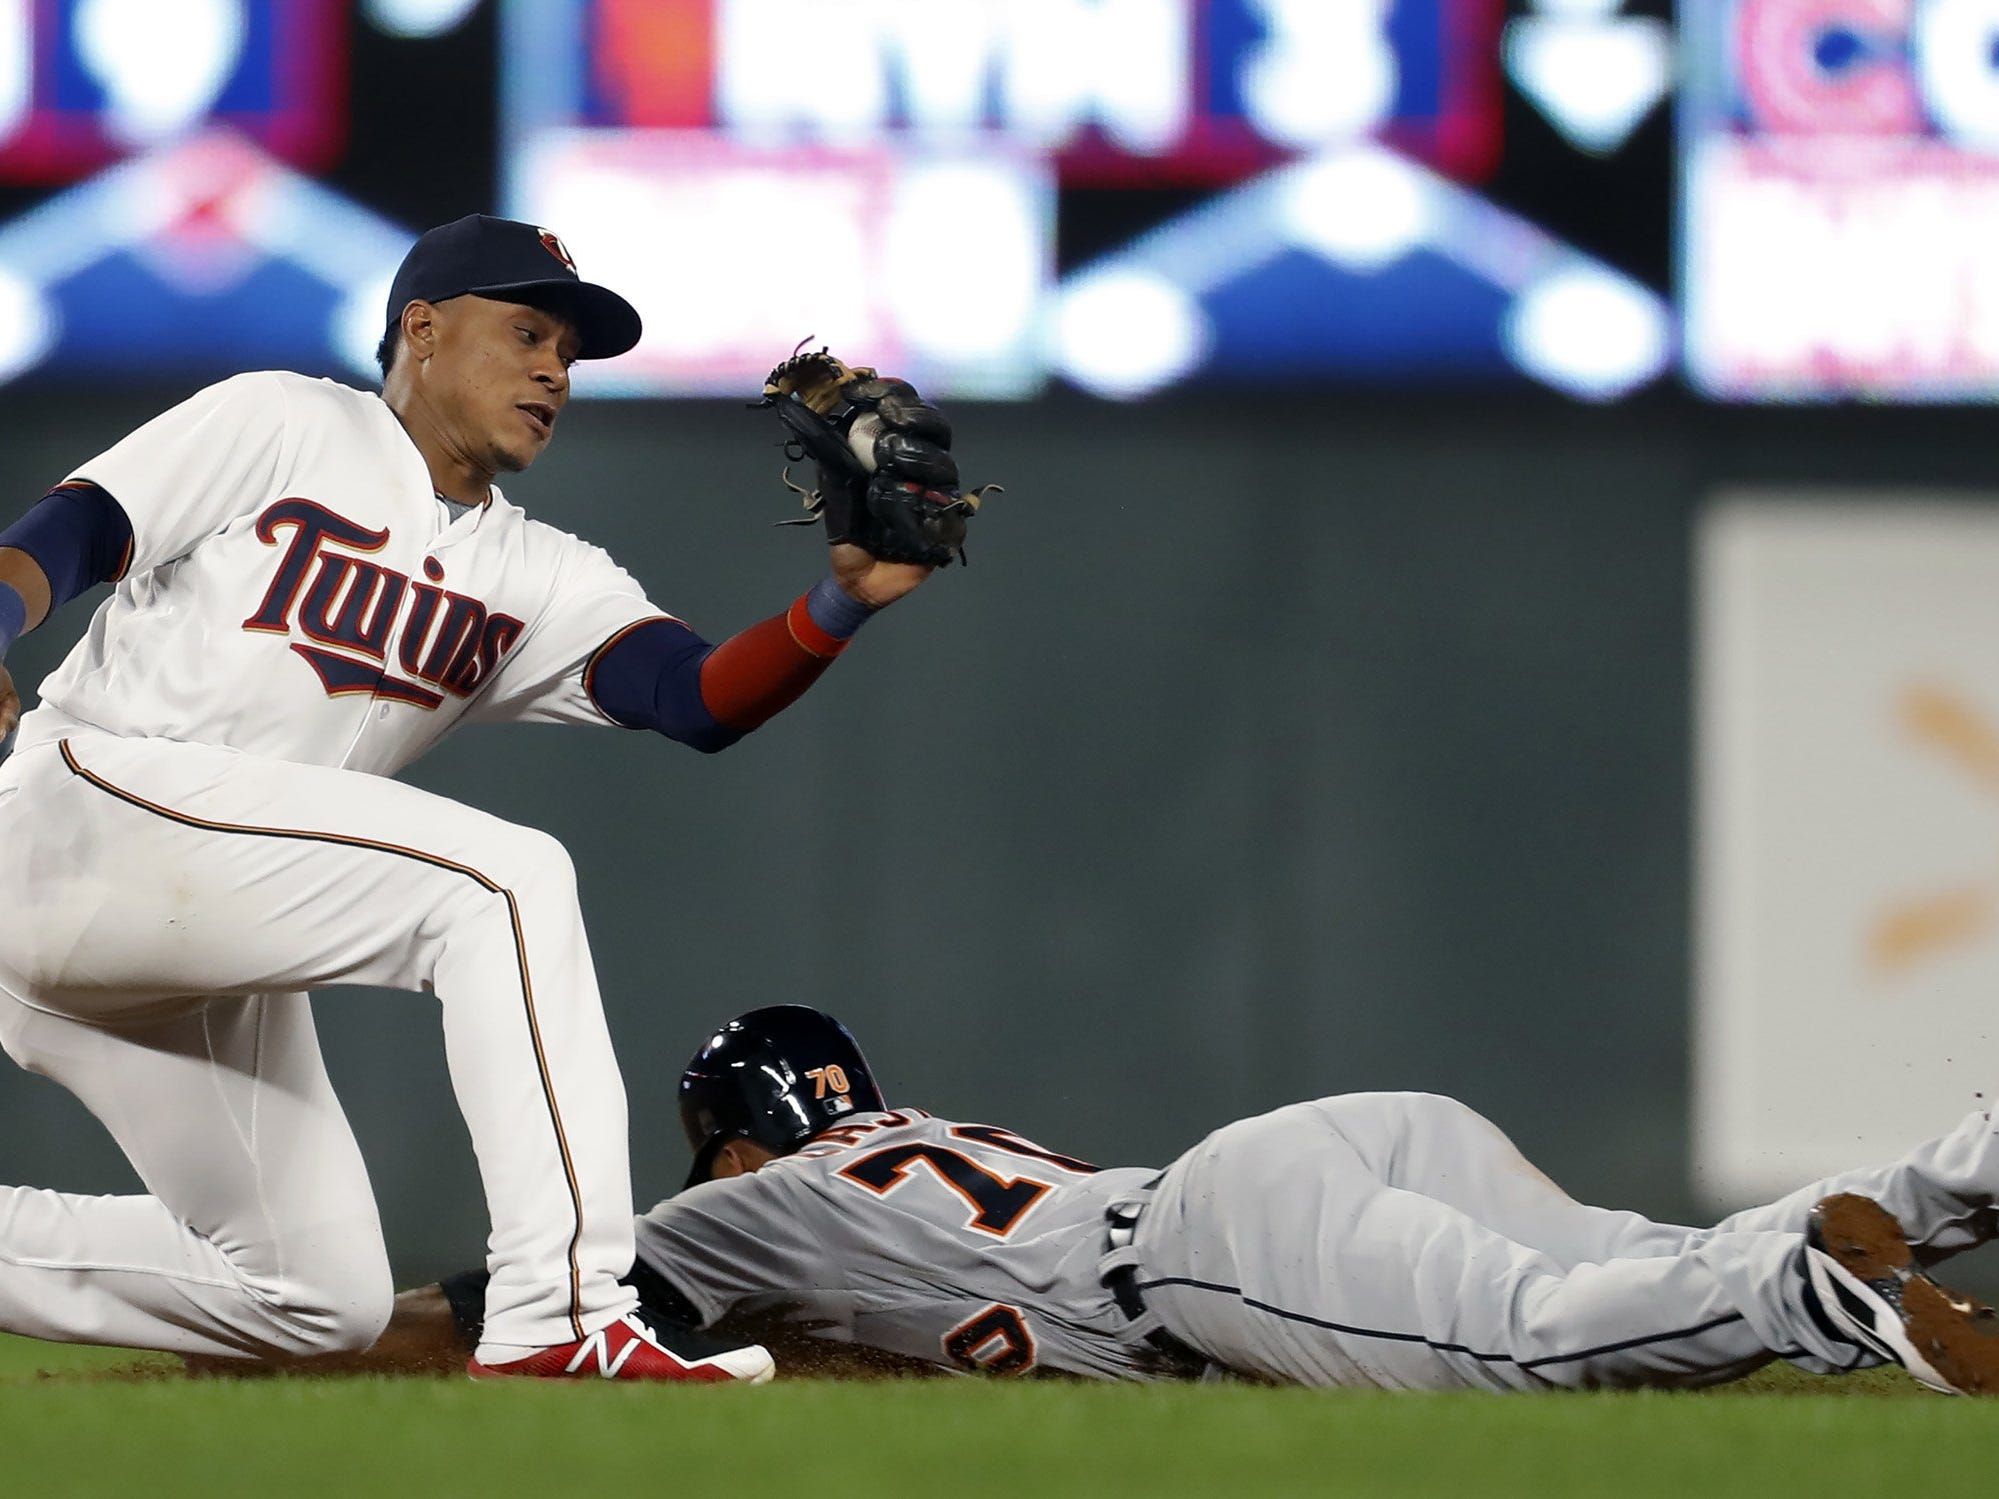 The Detroit Tigers' Harold Castro (70) steals second base in the eighth inning as Minnesota Twins infielder Jorge Polanco, left, is late with the tag at Target Field in Minneapolis on Tuesday, Sept. 25, 2018. The Tigers won, 4-2.